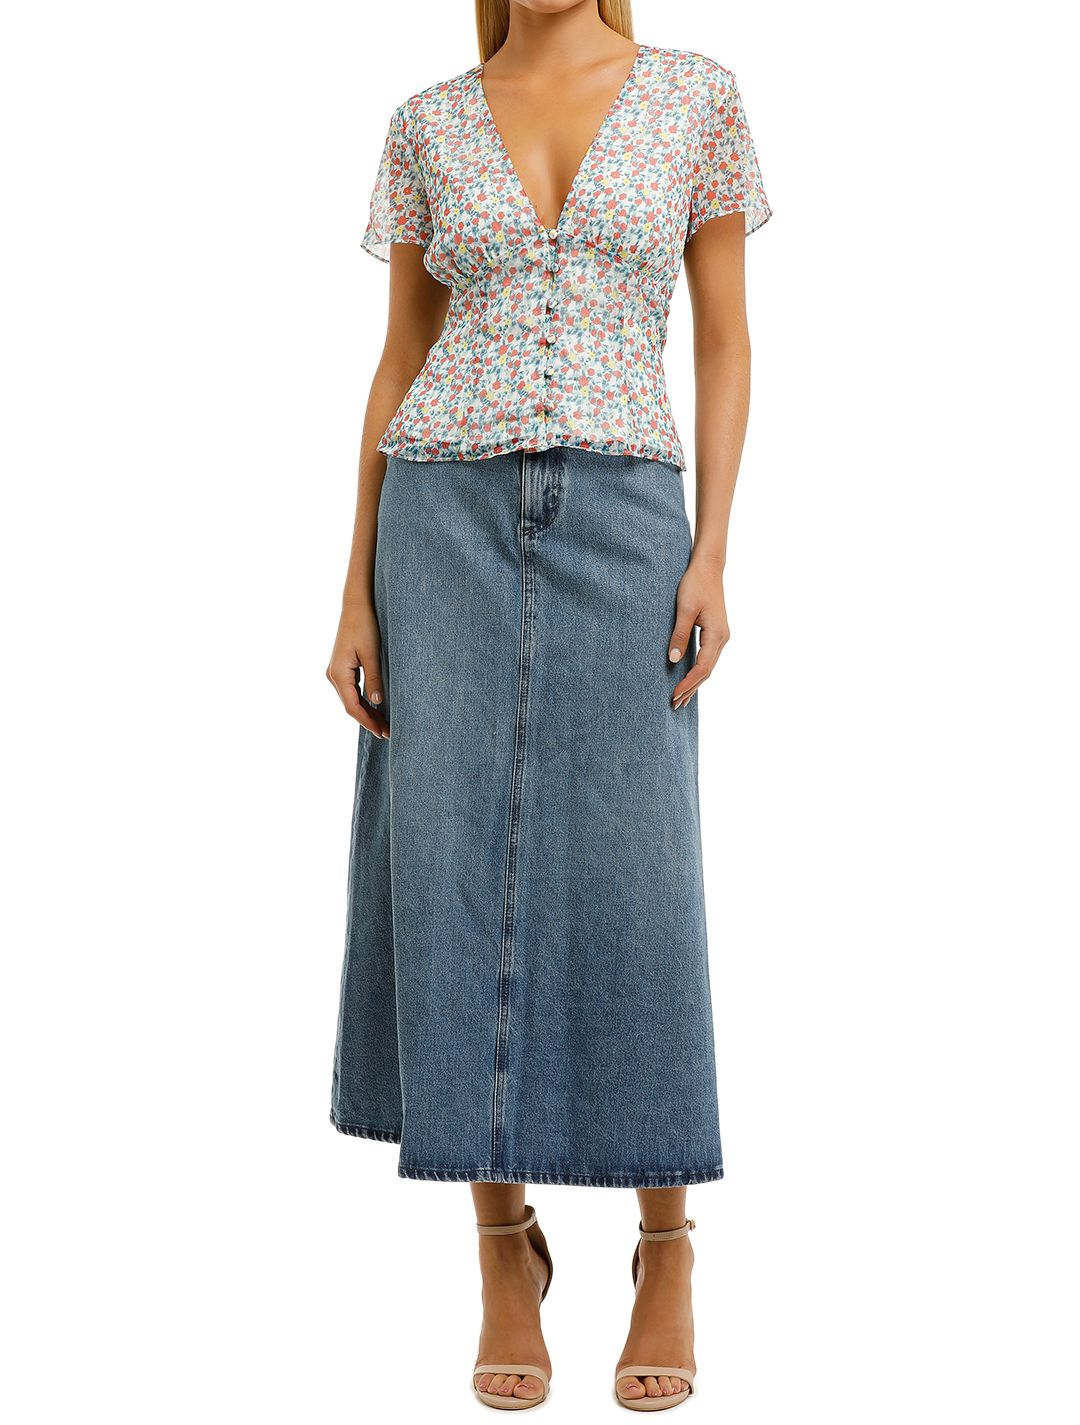 The-East-Order-Aubrey-Top-Bouquet-Floral-Front